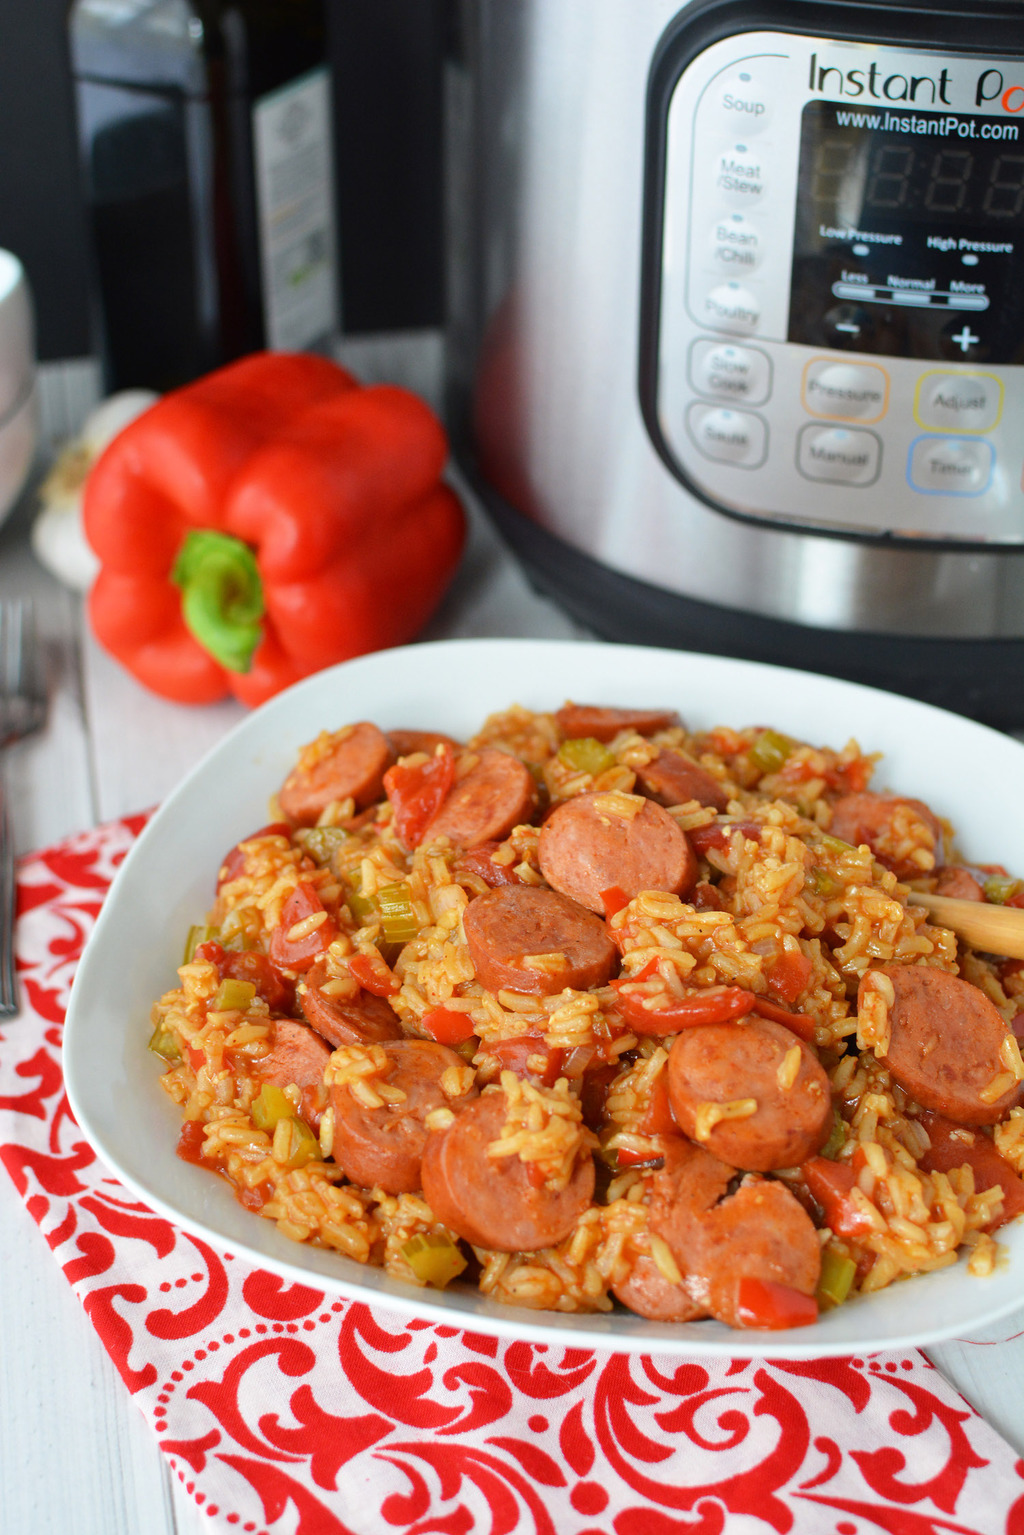 Instant Pot Jambalaya served on white dish with red bell pepper